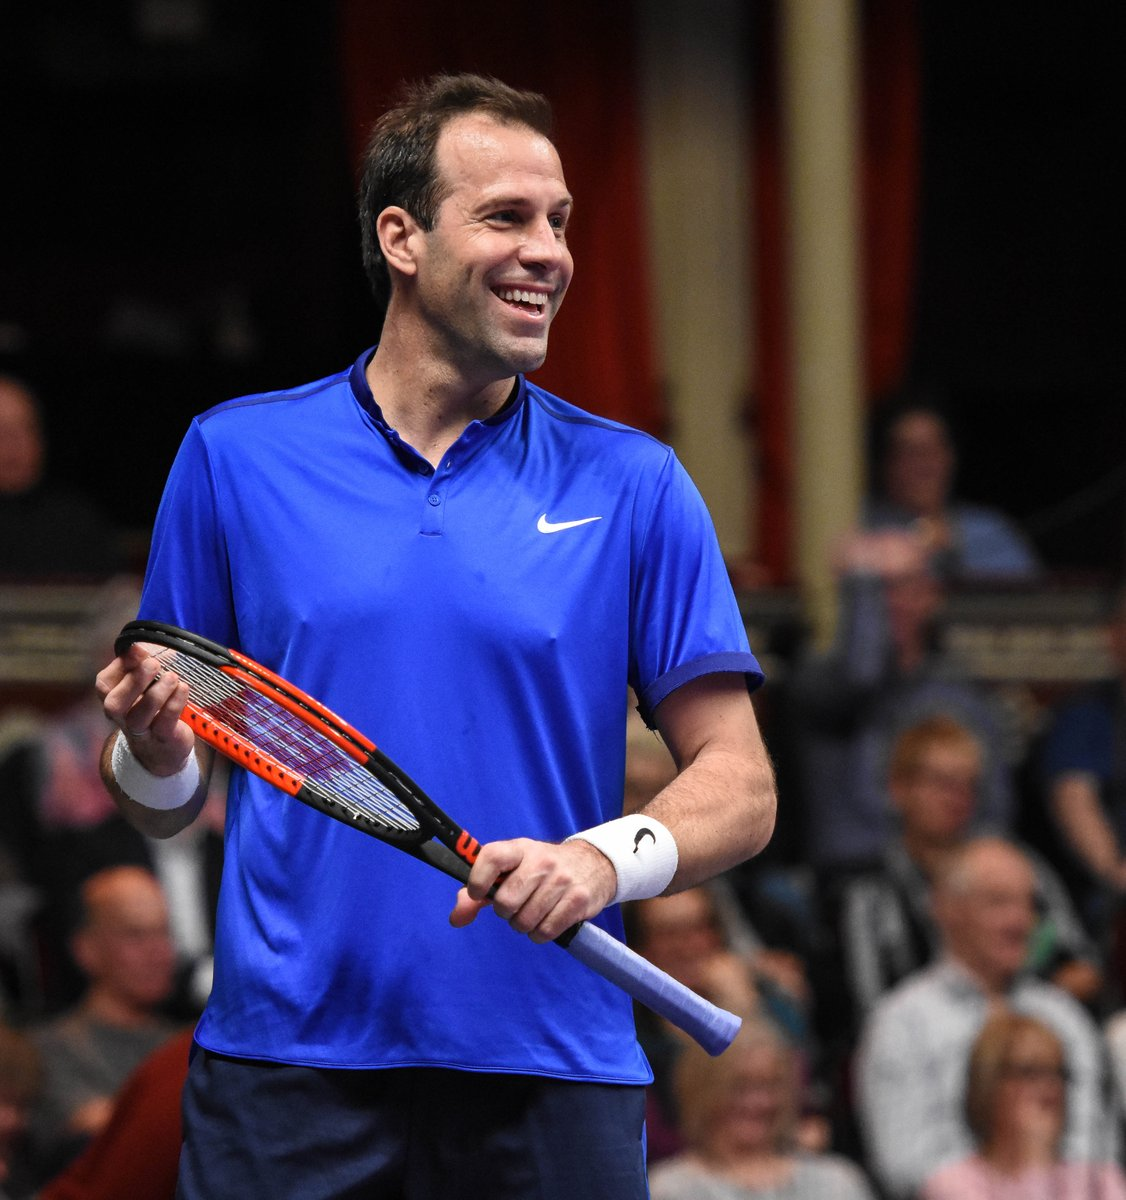 Tennis Speakers Tennisspeakers Twitter Racquet Diagrams Fame Hall Inductee International Greg Rusedski Mark Philippoussis Mansour Bahrami Are Confirmed To Compete At This Years Champions Http Bitly 2xffixa Pic